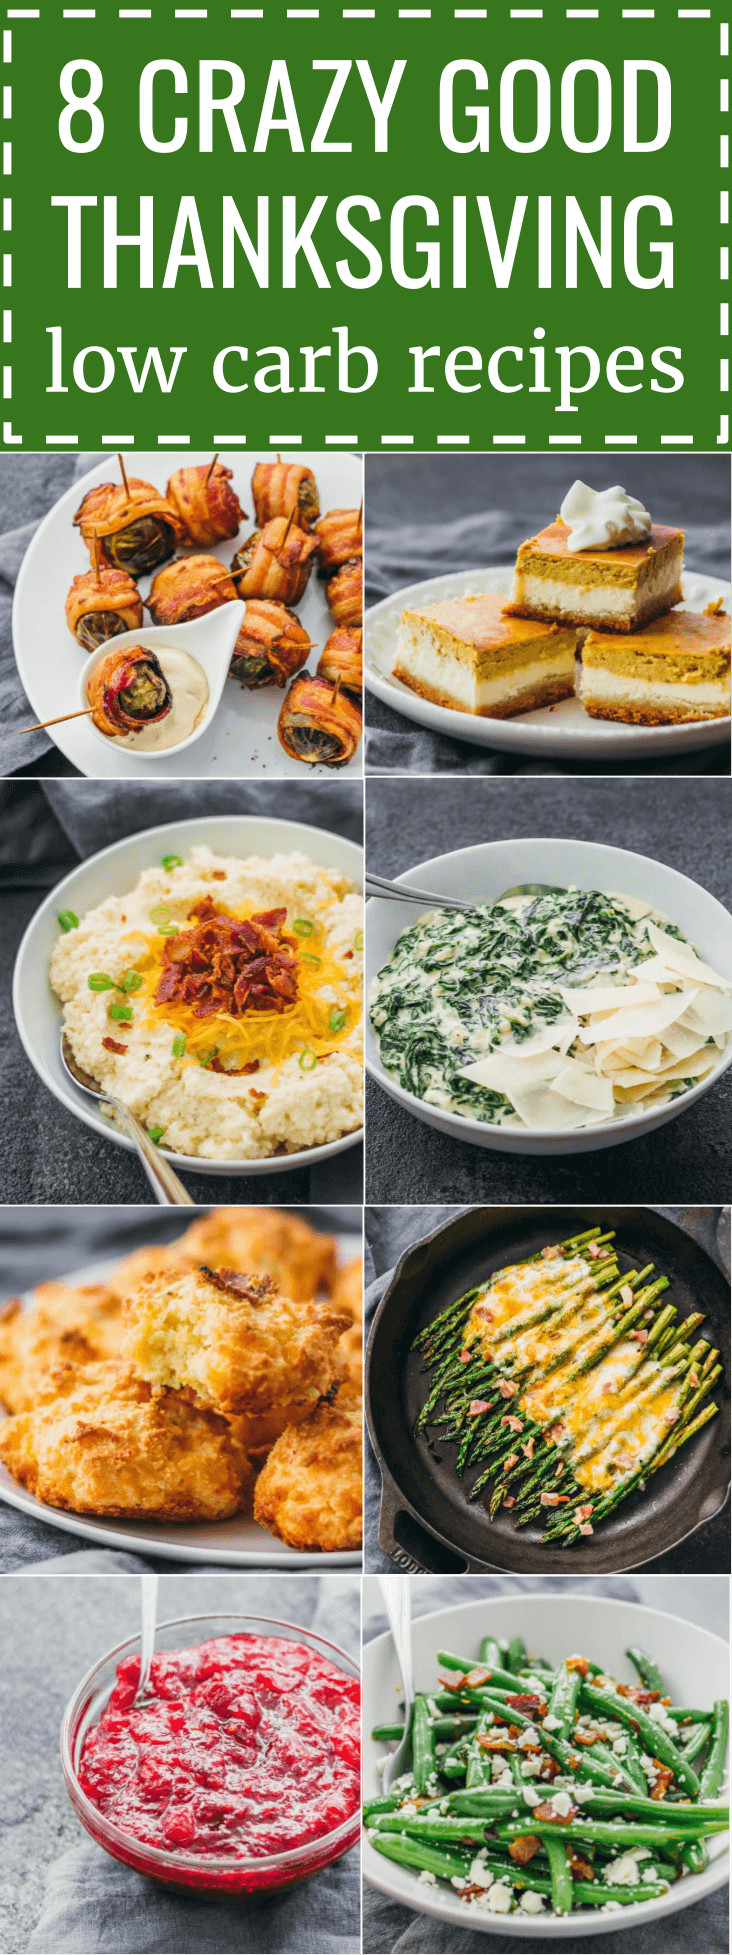 Low Carb Thanksgiving Side Dishes  Best Keto Thanksgiving Recipes For 2018 Savory Tooth